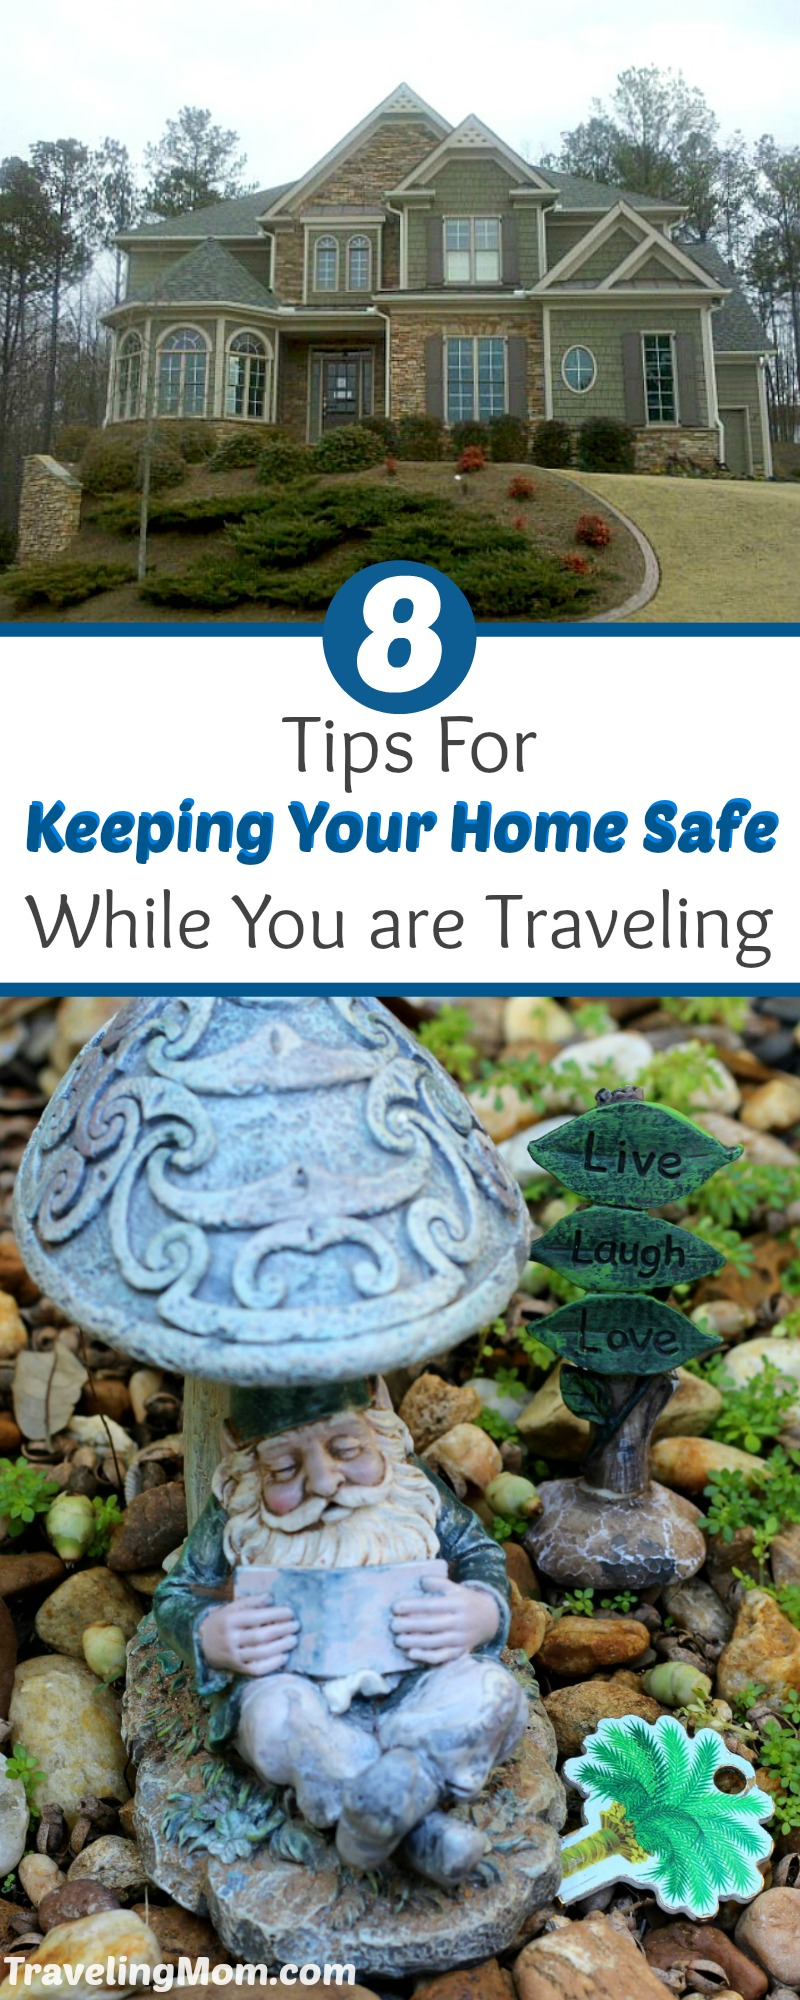 Leaving a light on used to be enough to keep your home safe while you're on vacation. It's harder now, so here are the latest tips.